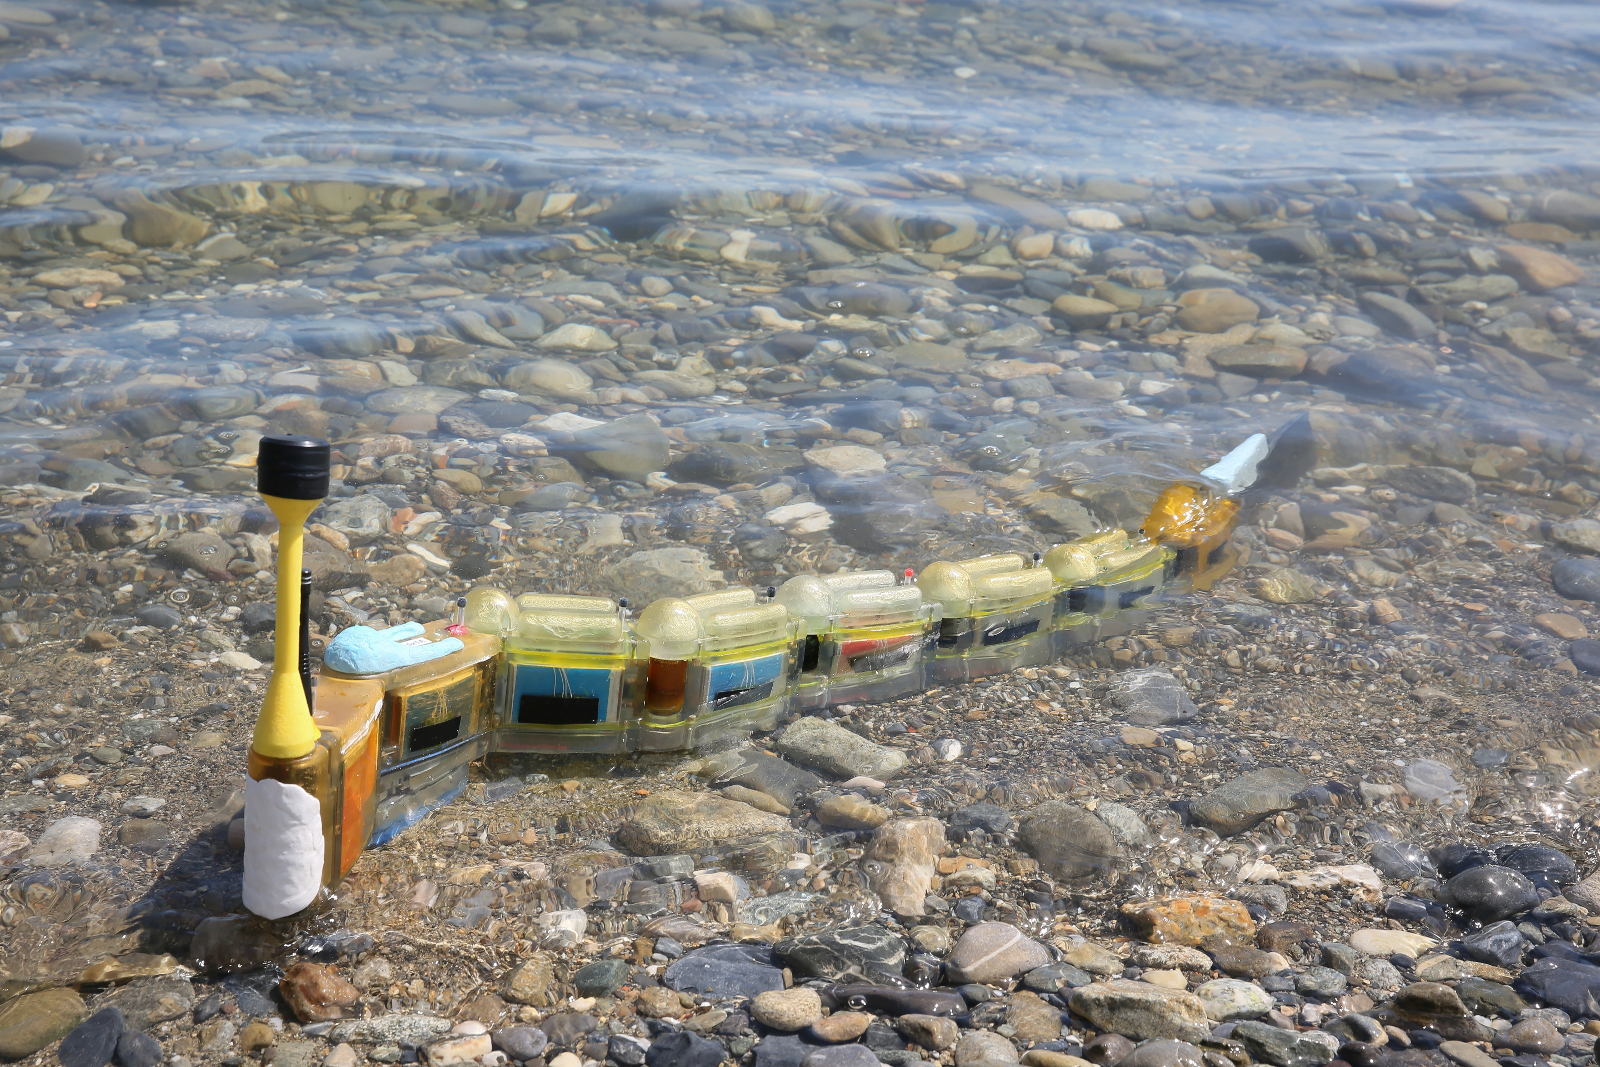 Modular robotic eel hunts for sources of water pollution